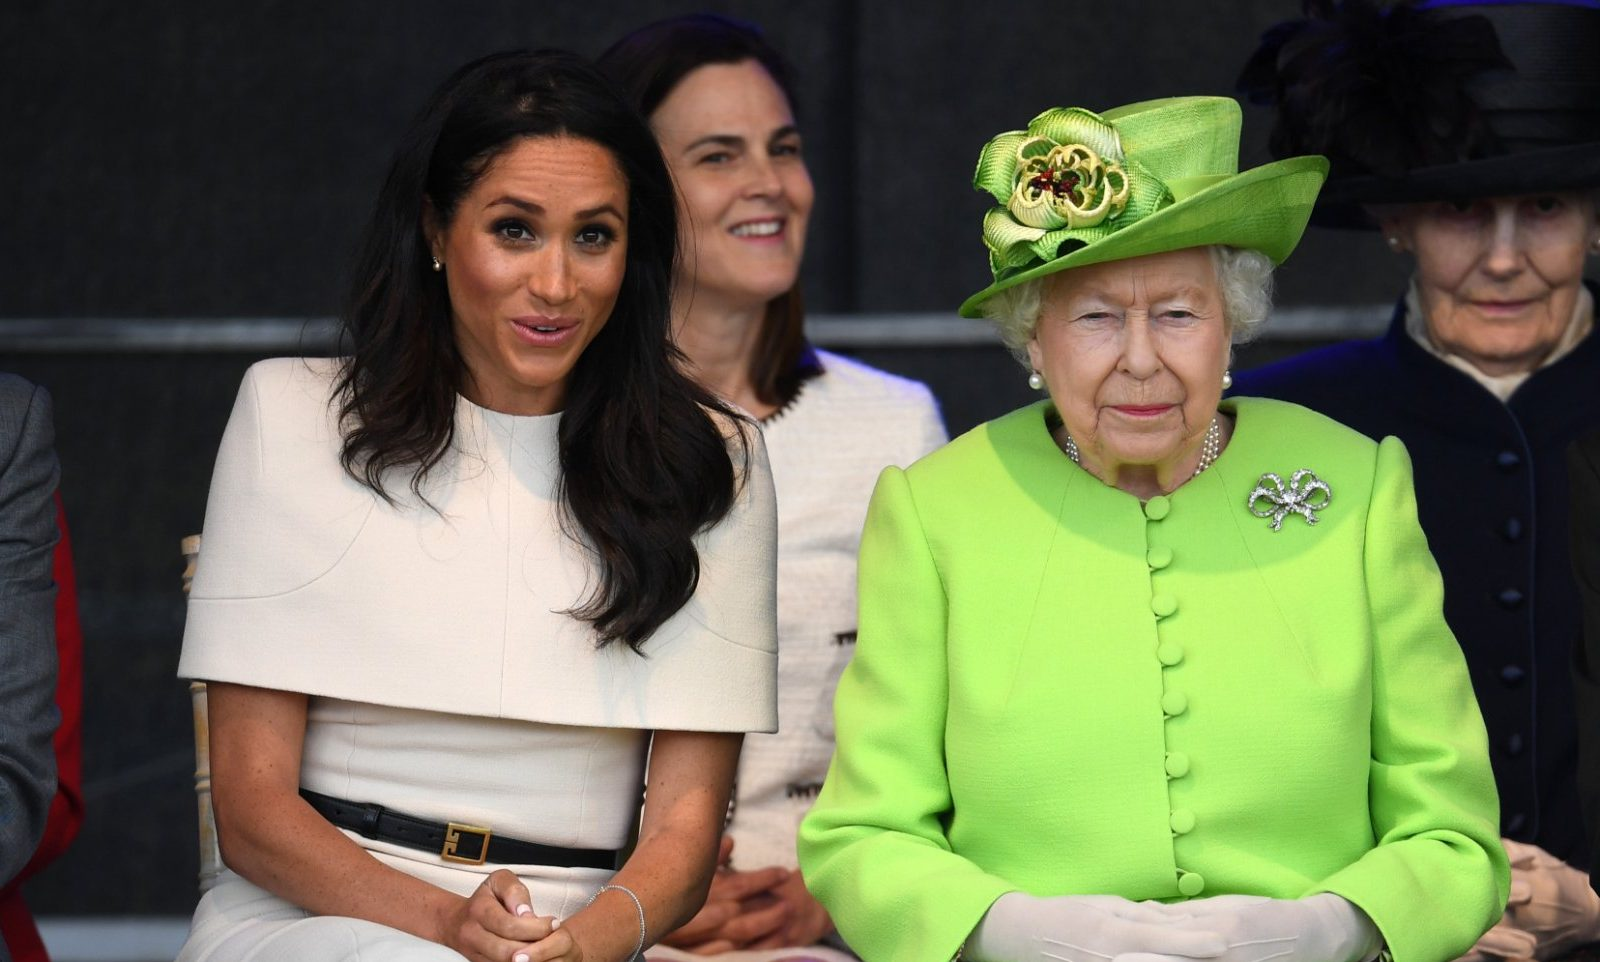 WIDNES, ENGLAND - JUNE 14: Queen Elizabeth II sits with Meghan, Duchess of Sussex during a ceremony to open the new Mersey Gateway Bridge on June 14, 2018 in the town of Widnes in Halton, Cheshire, England. Meghan Markle married Prince Harry last month to become The Duchess of Sussex and this is her first engagement with the Queen. During the visit the pair will open a road bridge in Widnes and visit The Storyhouse and Town Hall in Chester. (Photo by Jeff J Mitchell/Getty Images)